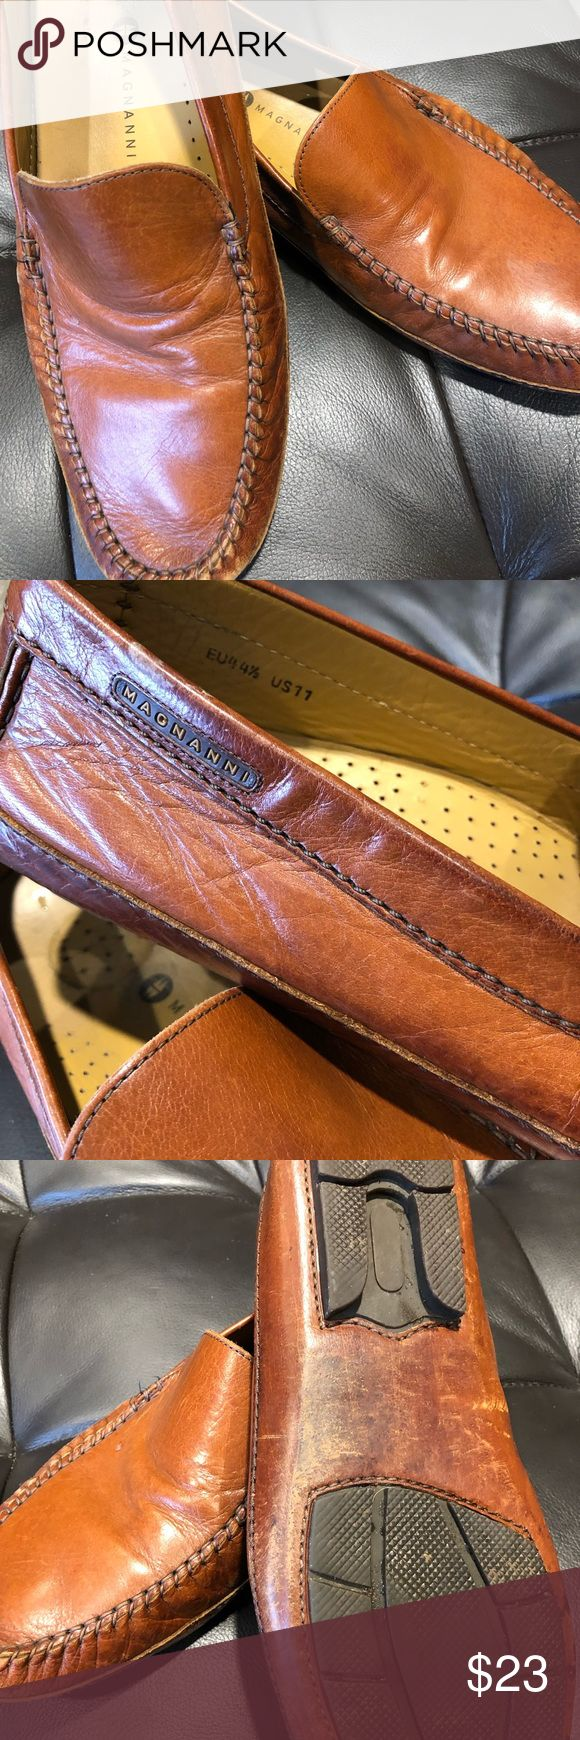 Magnanni loafers. Men's size 11 Magnanni loafers broken in, has some wear but ...